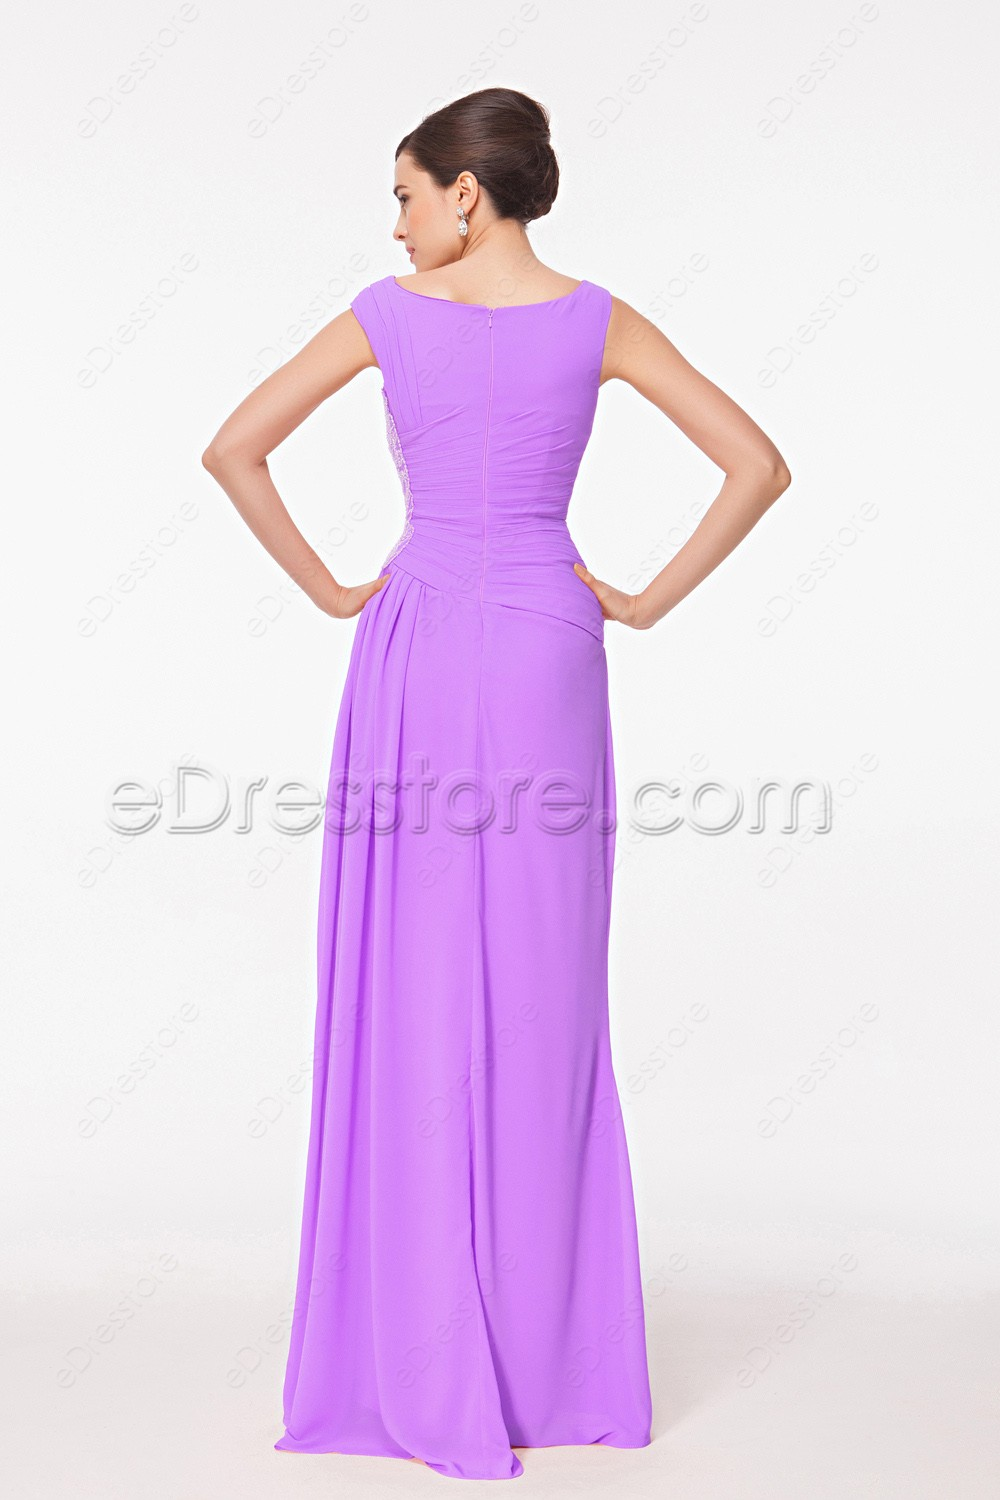 Modest orchid bridesmaid dresses maid of honor dresses for Maid of honor wedding dresses